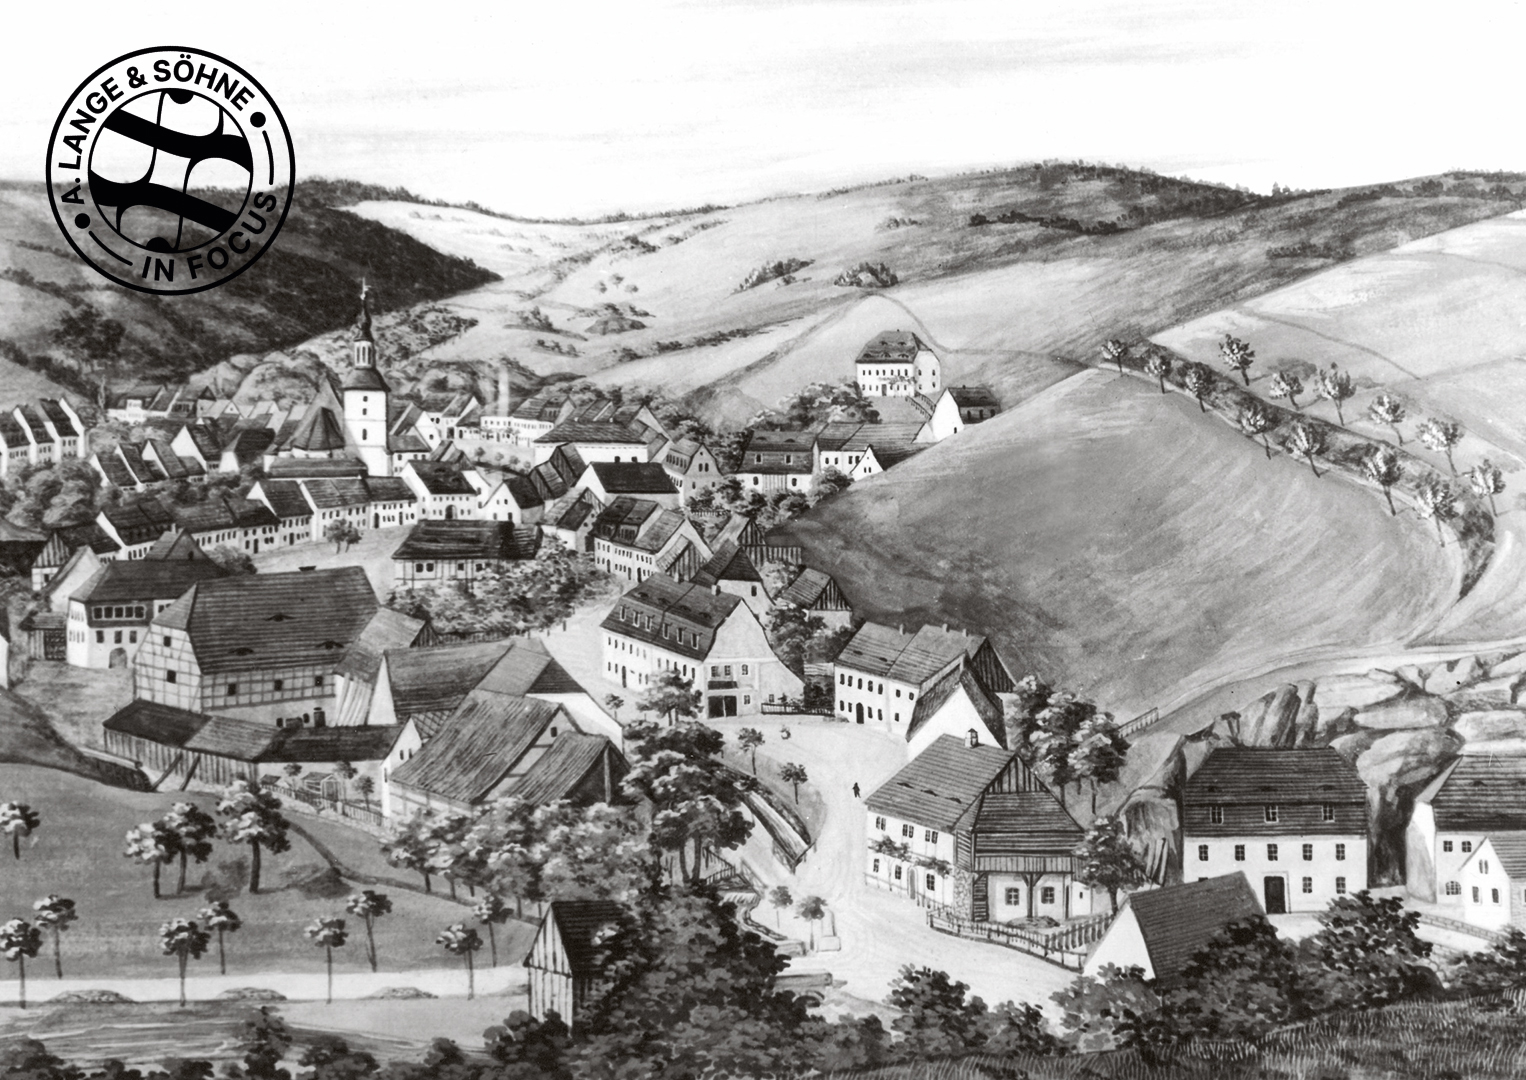 A sketch of Glashütte in the mid-19th century when its watchmaking traditions began